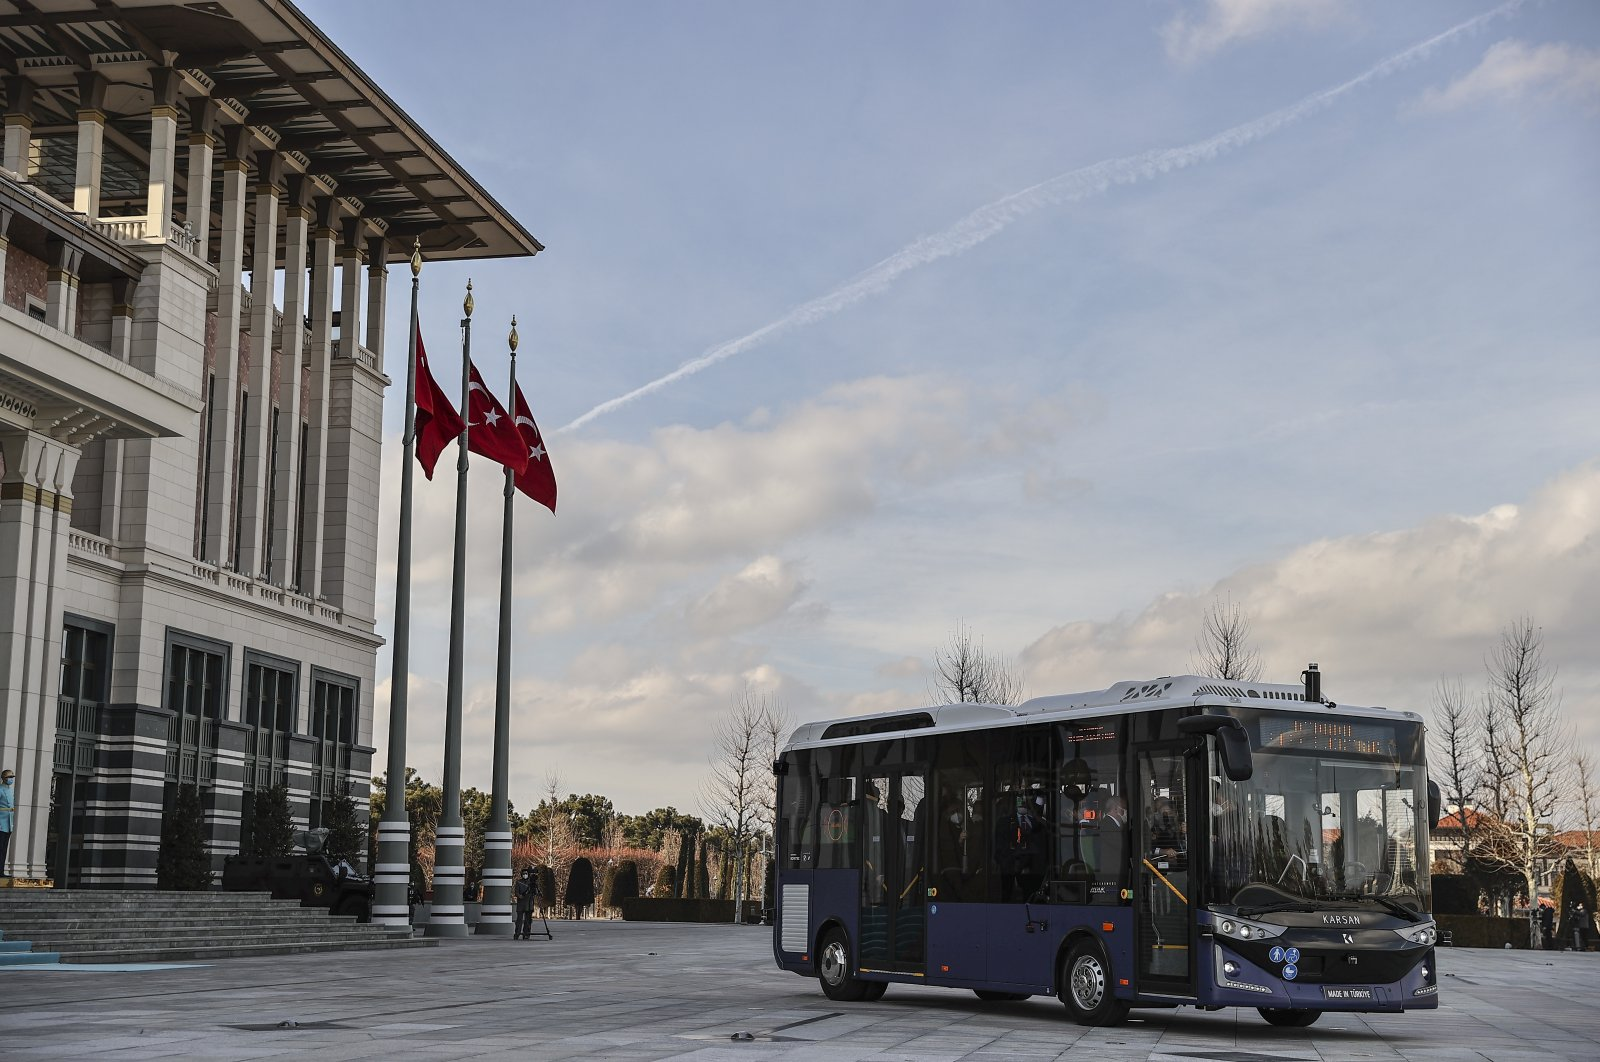 Turkey's first driverless electric bus is tested by President Recep Tayyip Erdoğan in Beştepe Presidential Complex in the capital Ankara, Turkey, Feb. 1, 2021. (AA Photo)